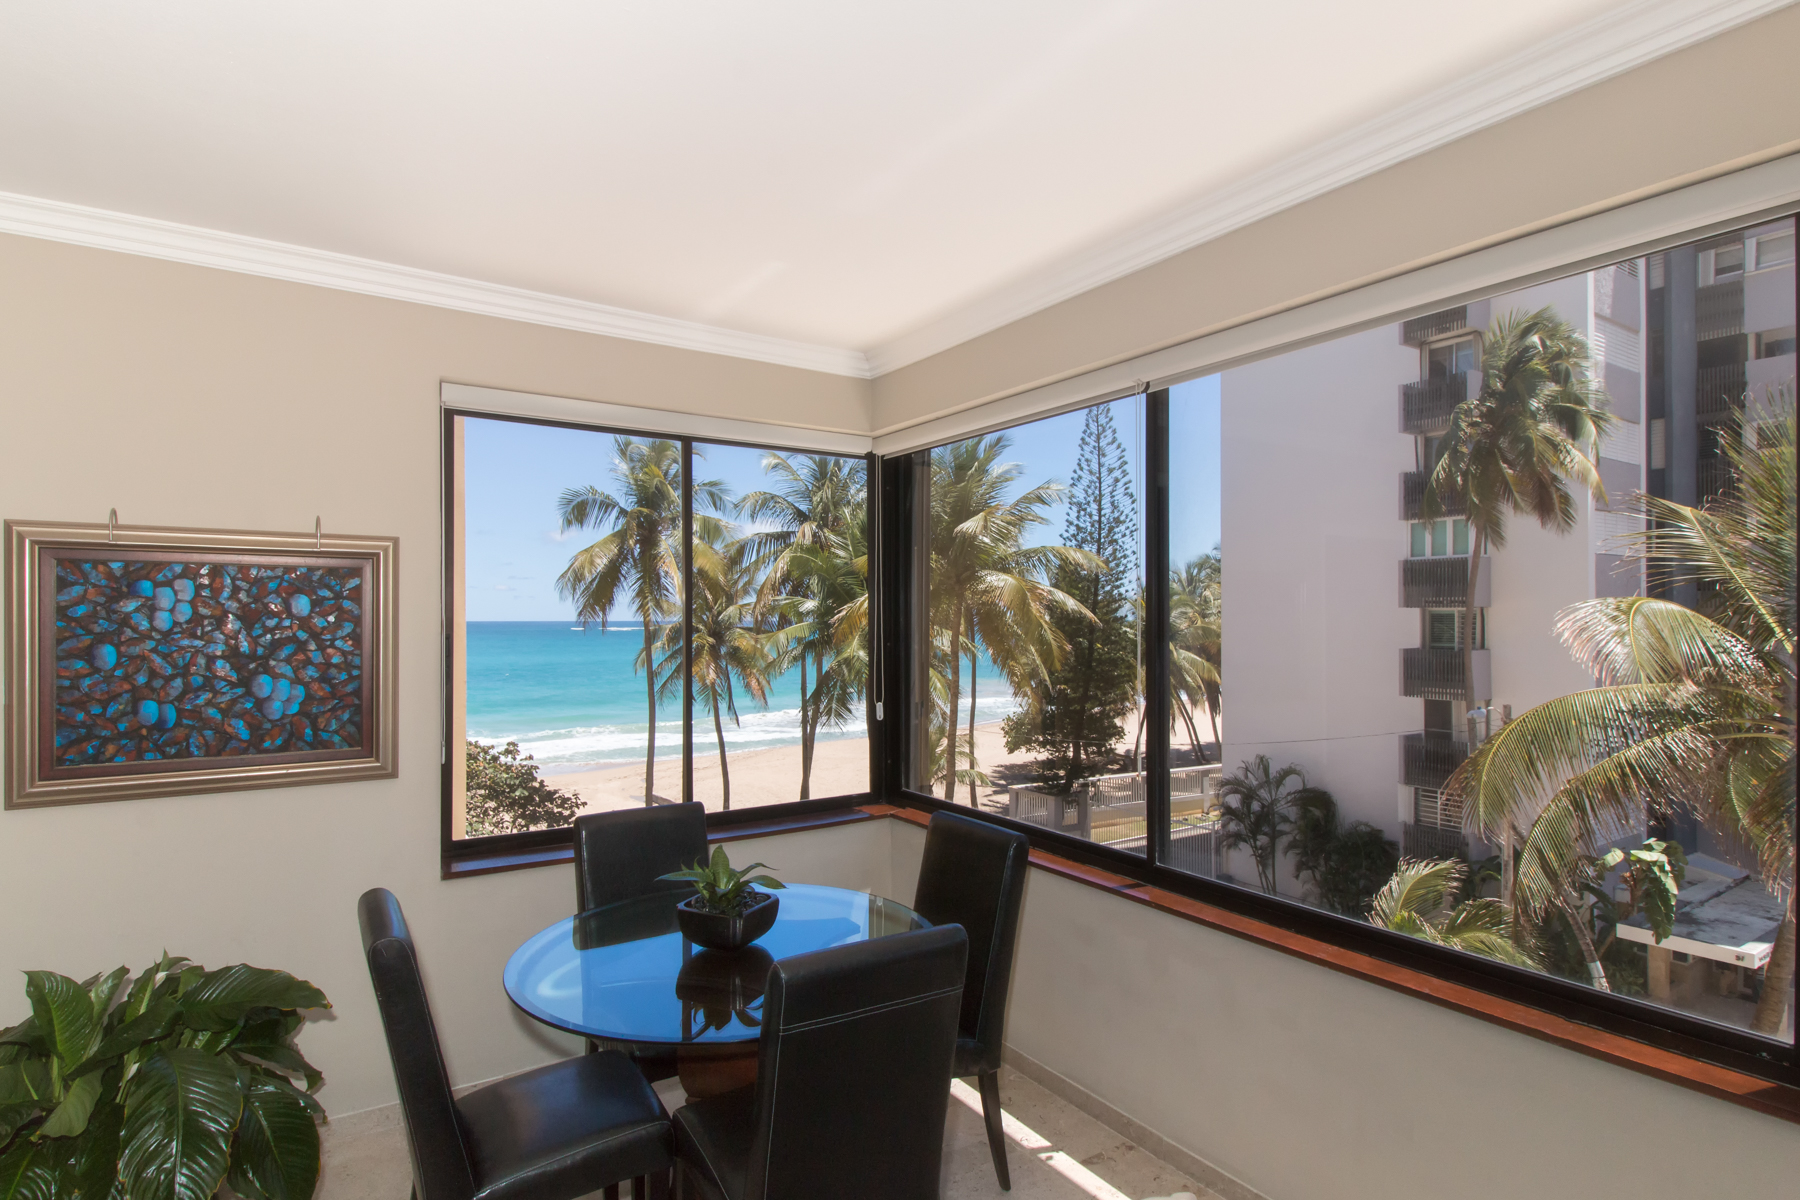 Additional photo for property listing at Beachfront on Kings Court 52 Kings Court Apt, 3A San Juan, Puerto Rico 00911 Πουερτο Ρικο